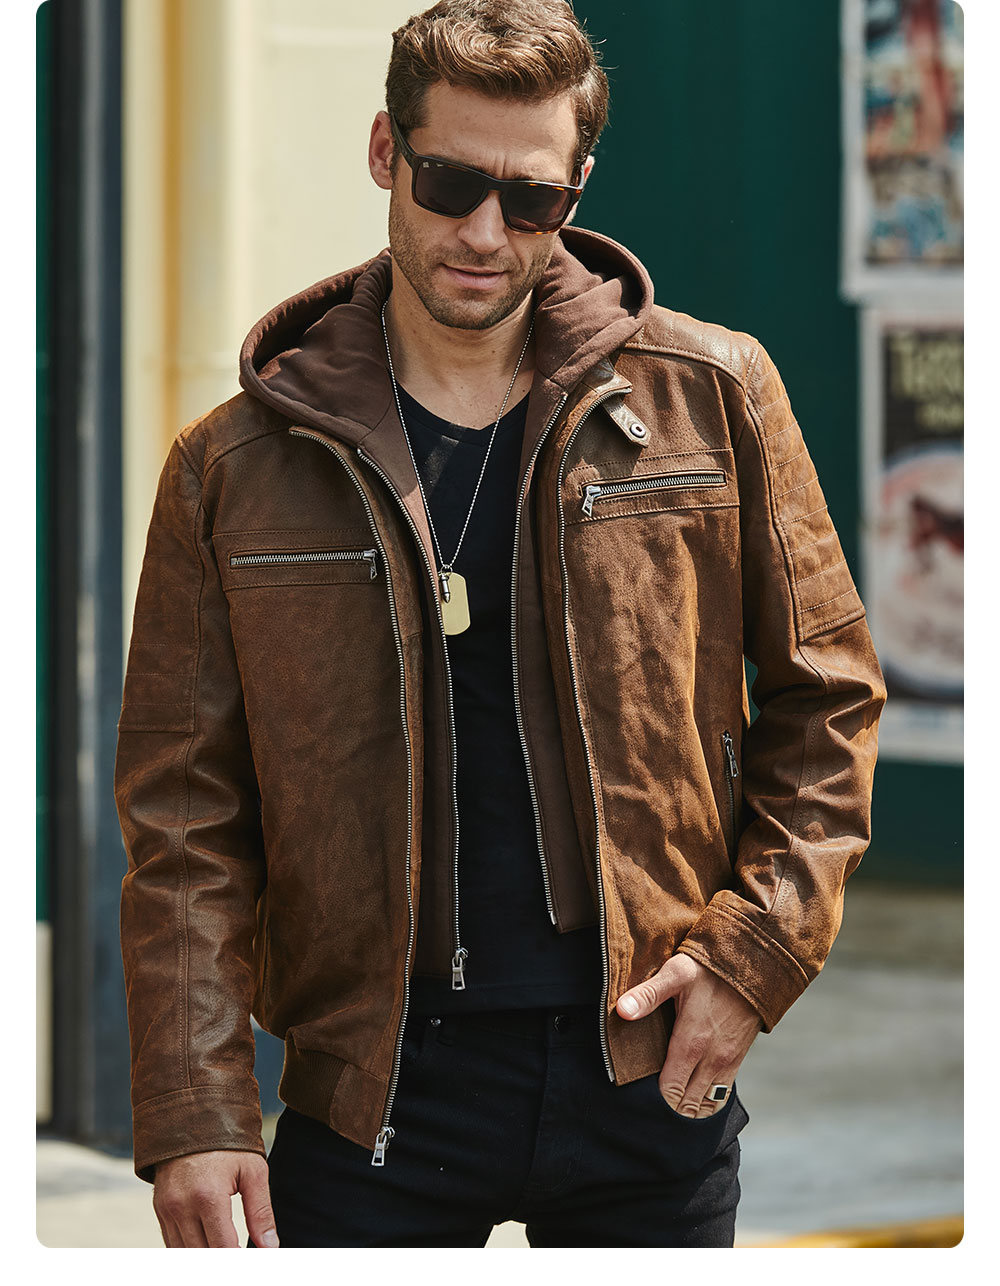 H7eeac5db68fb4a07a89ef39adbe7b26eU New Men's Leather Jacket, Brown Jacket Made Of Genuine Leather With A Removable Hood, Warm Leather Jacket For Men For The Winter